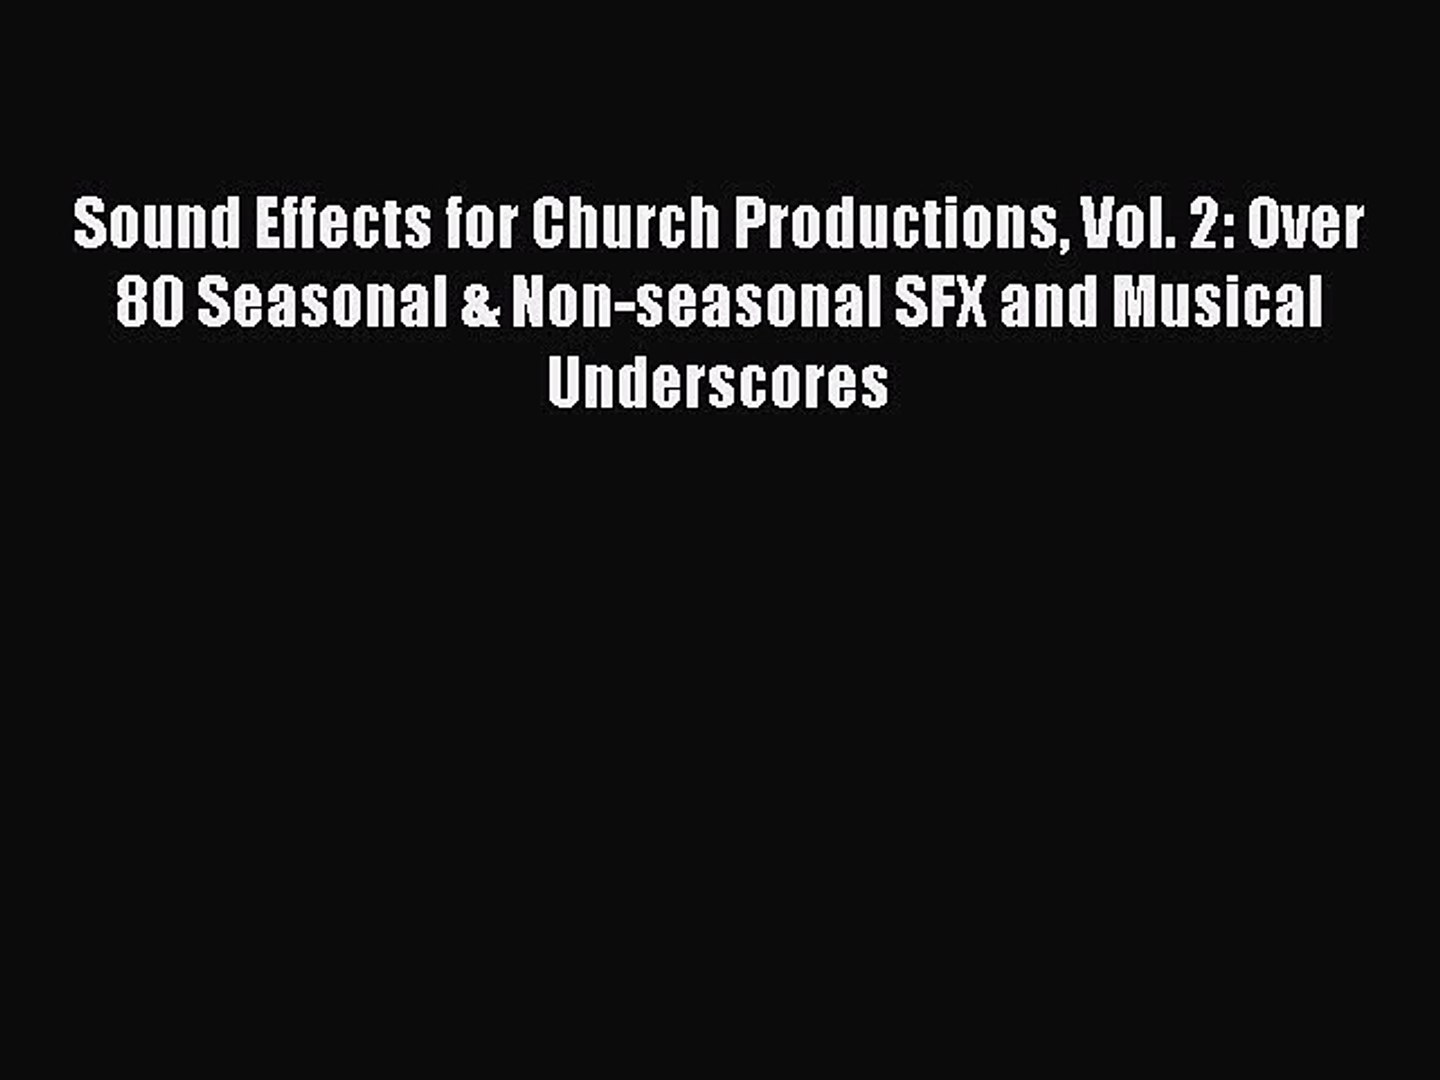 [PDF] Sound Effects for Church Productions Vol  2: Over 80 Seasonal &  Non-seasonal SFX and